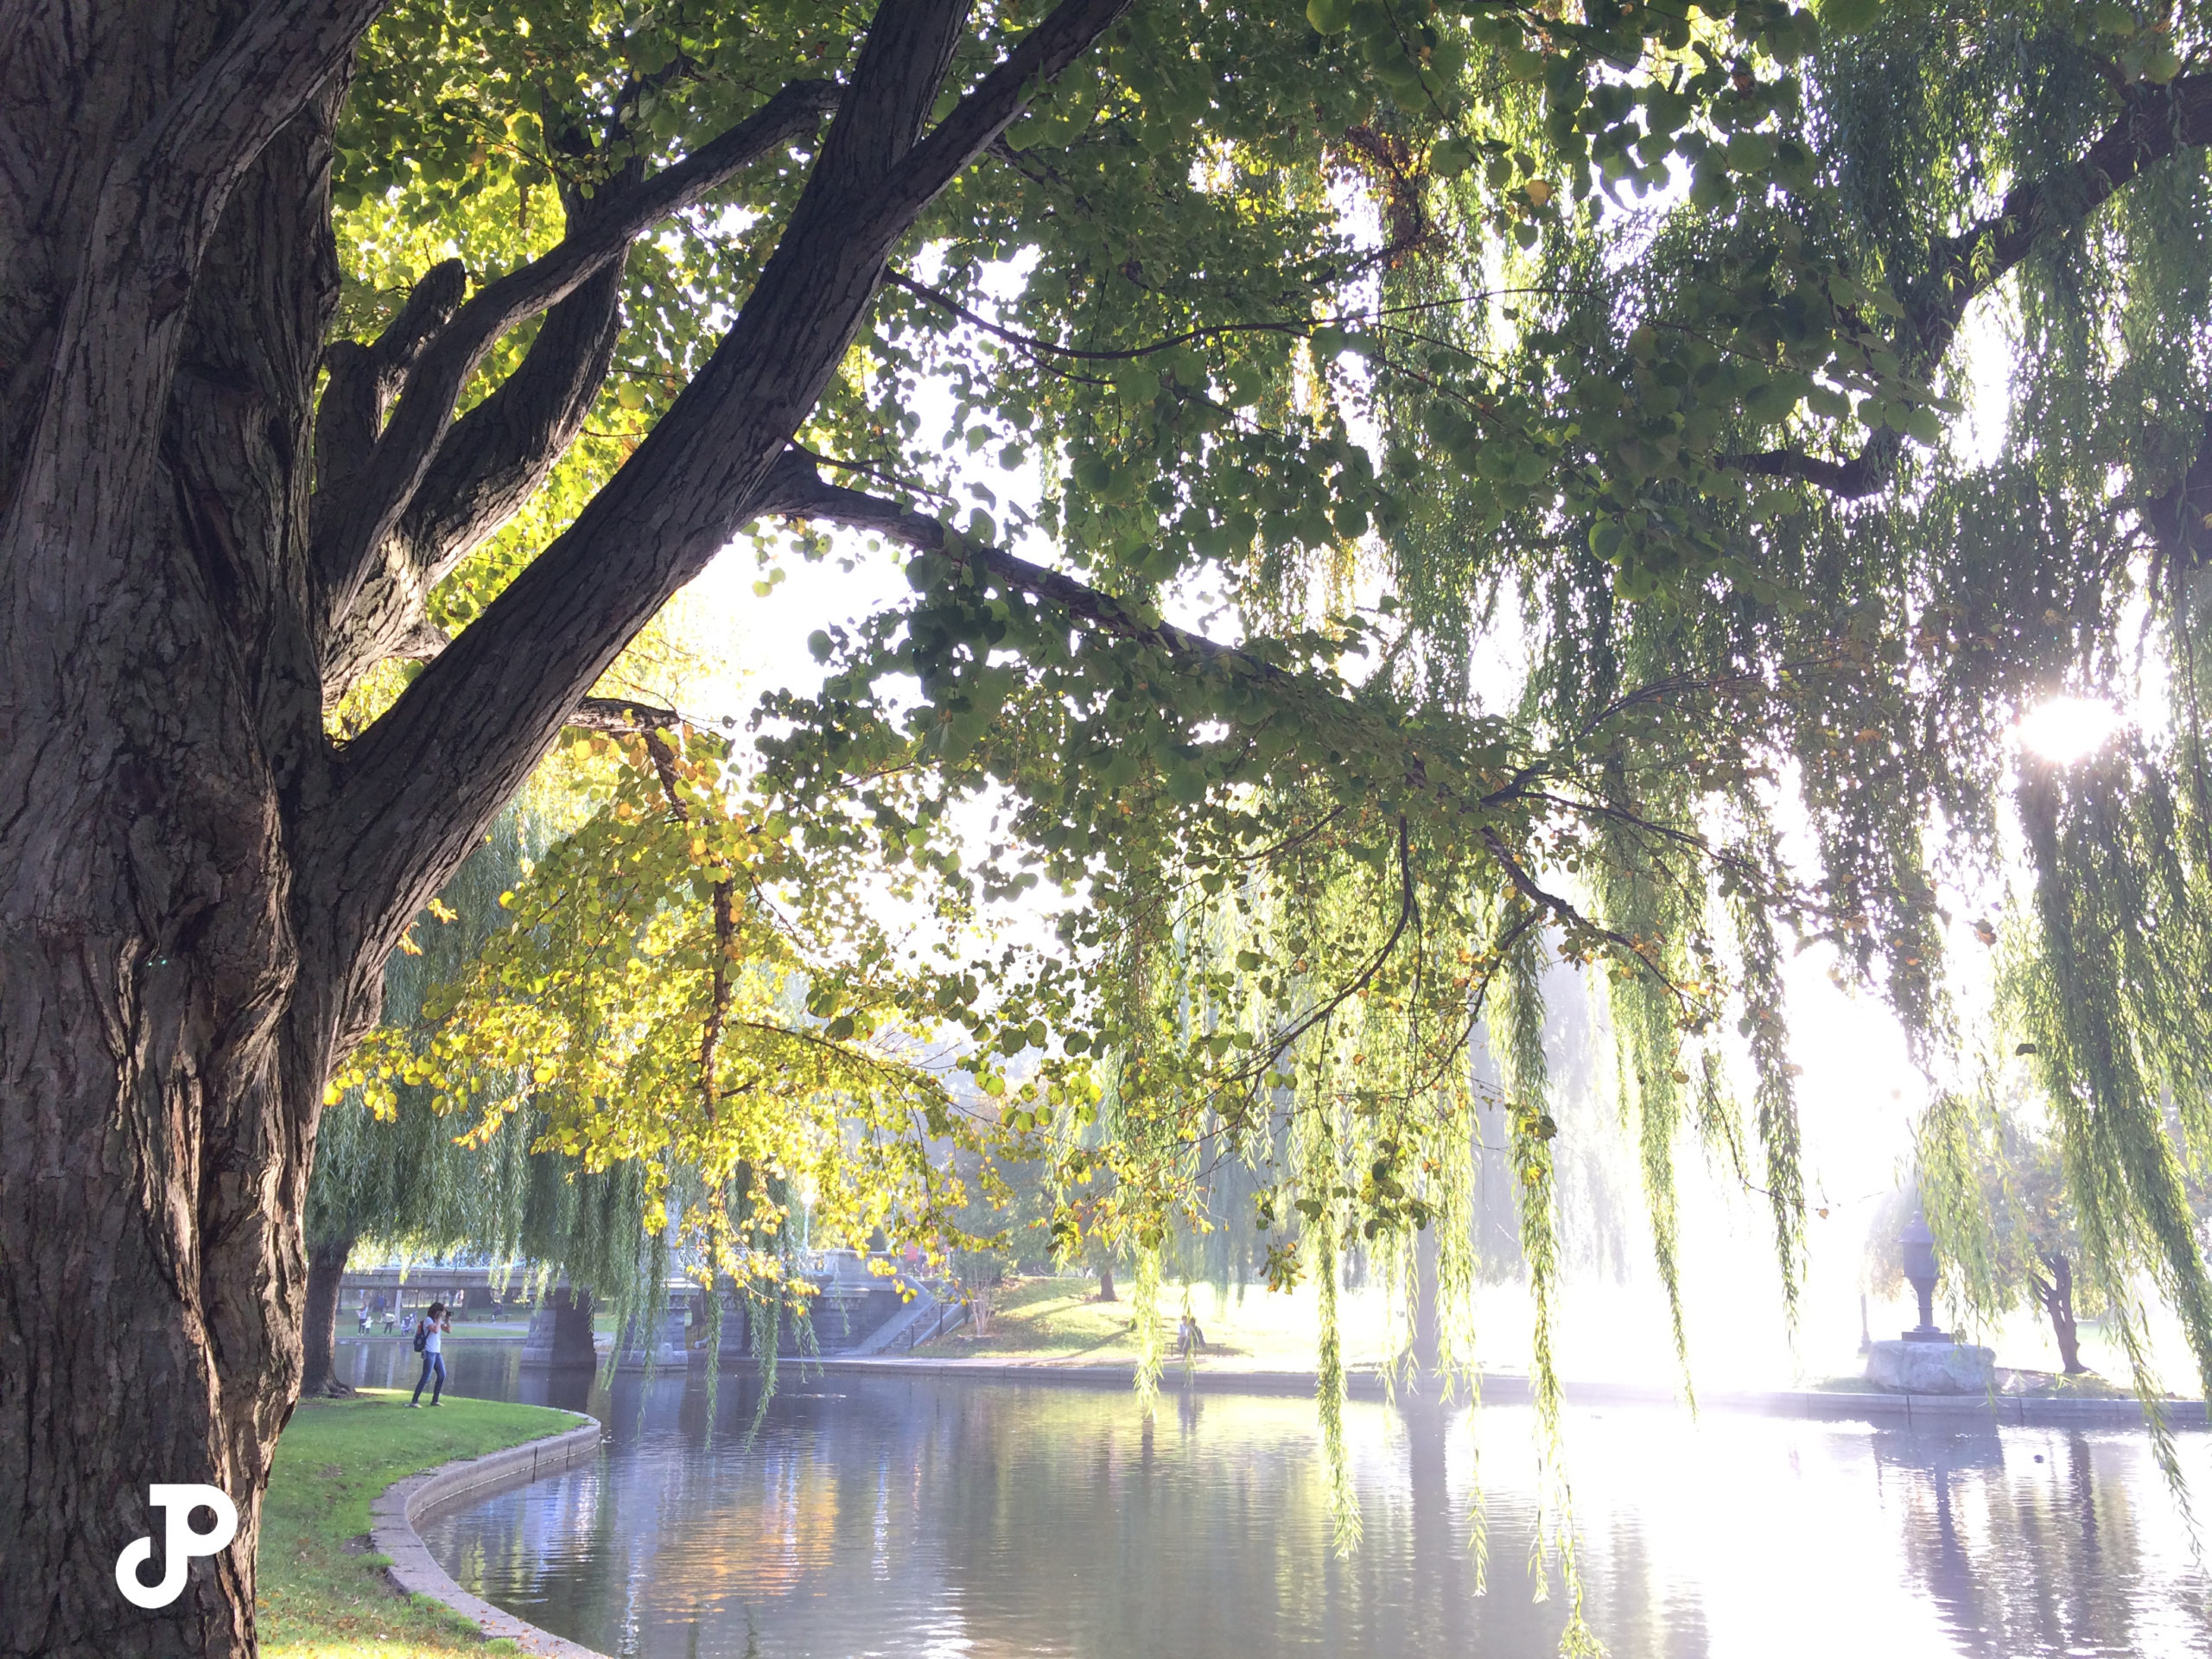 sun filtering through willow trees in the Boston Public Garden